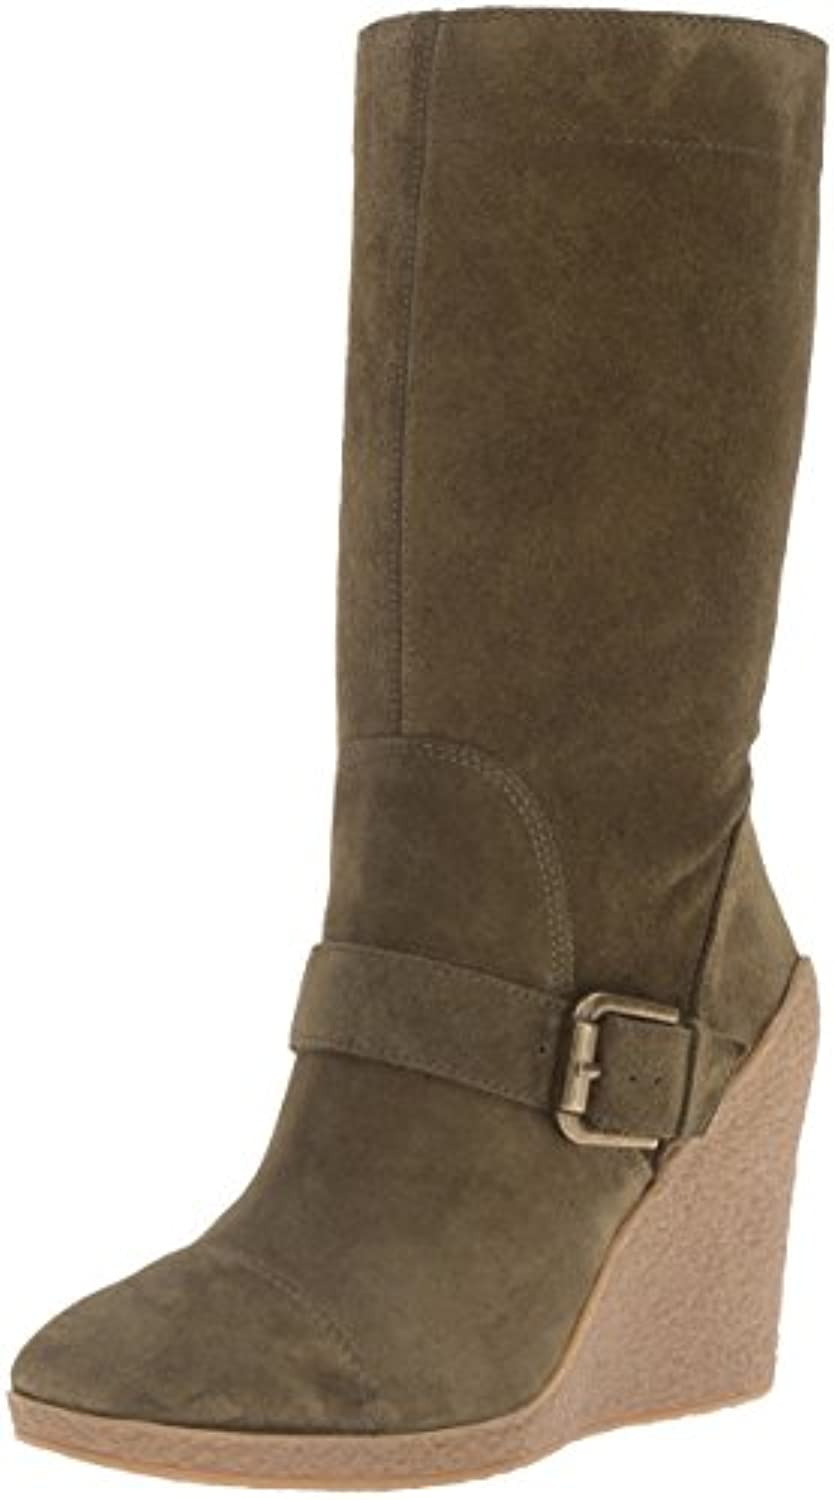 Nine West Darren Damen US 7.5 Grün Mode-Knie Hoch Stiefel